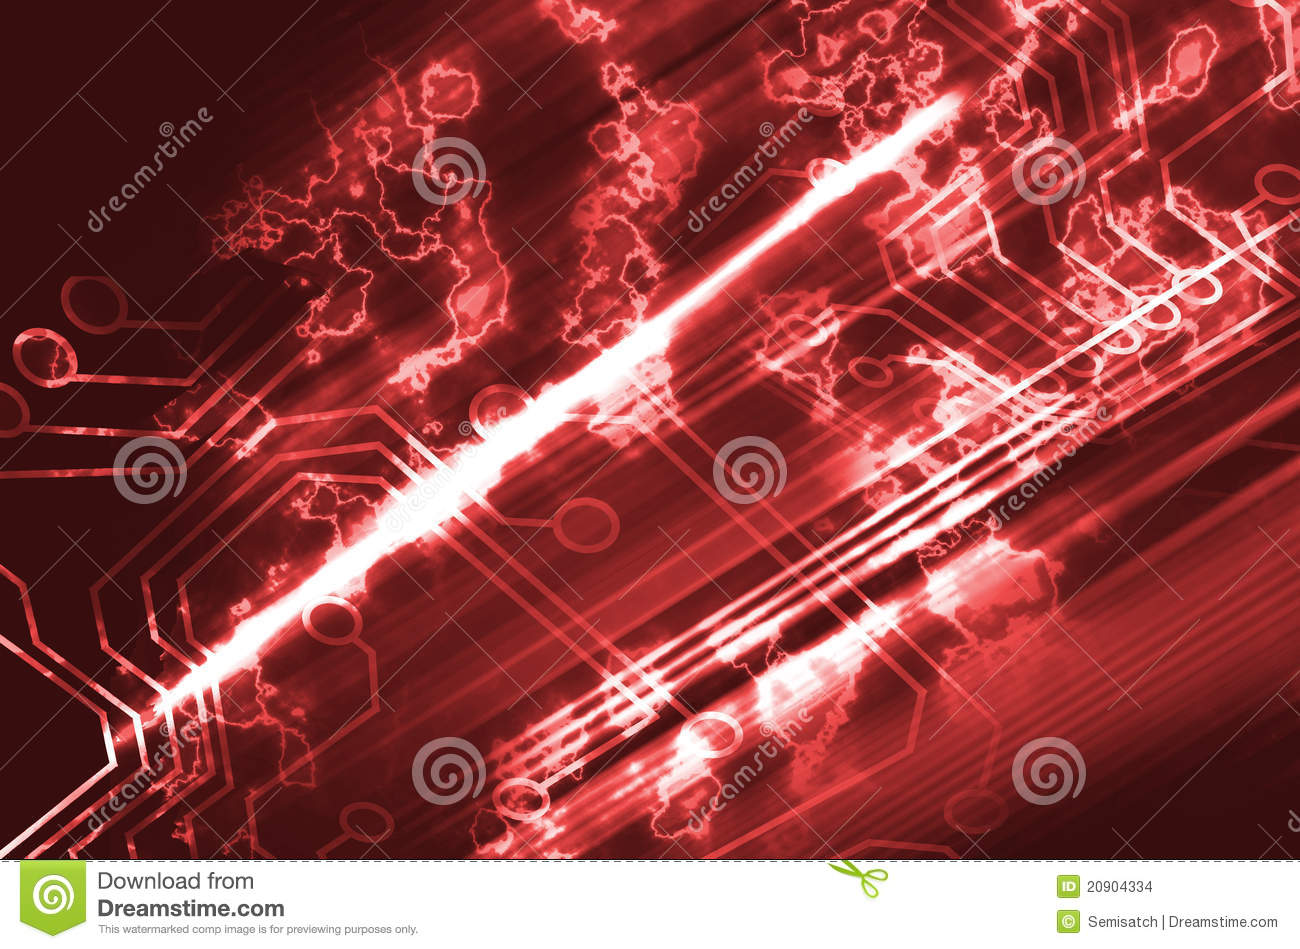 Microchip Background Stock Images - Image: 20904334